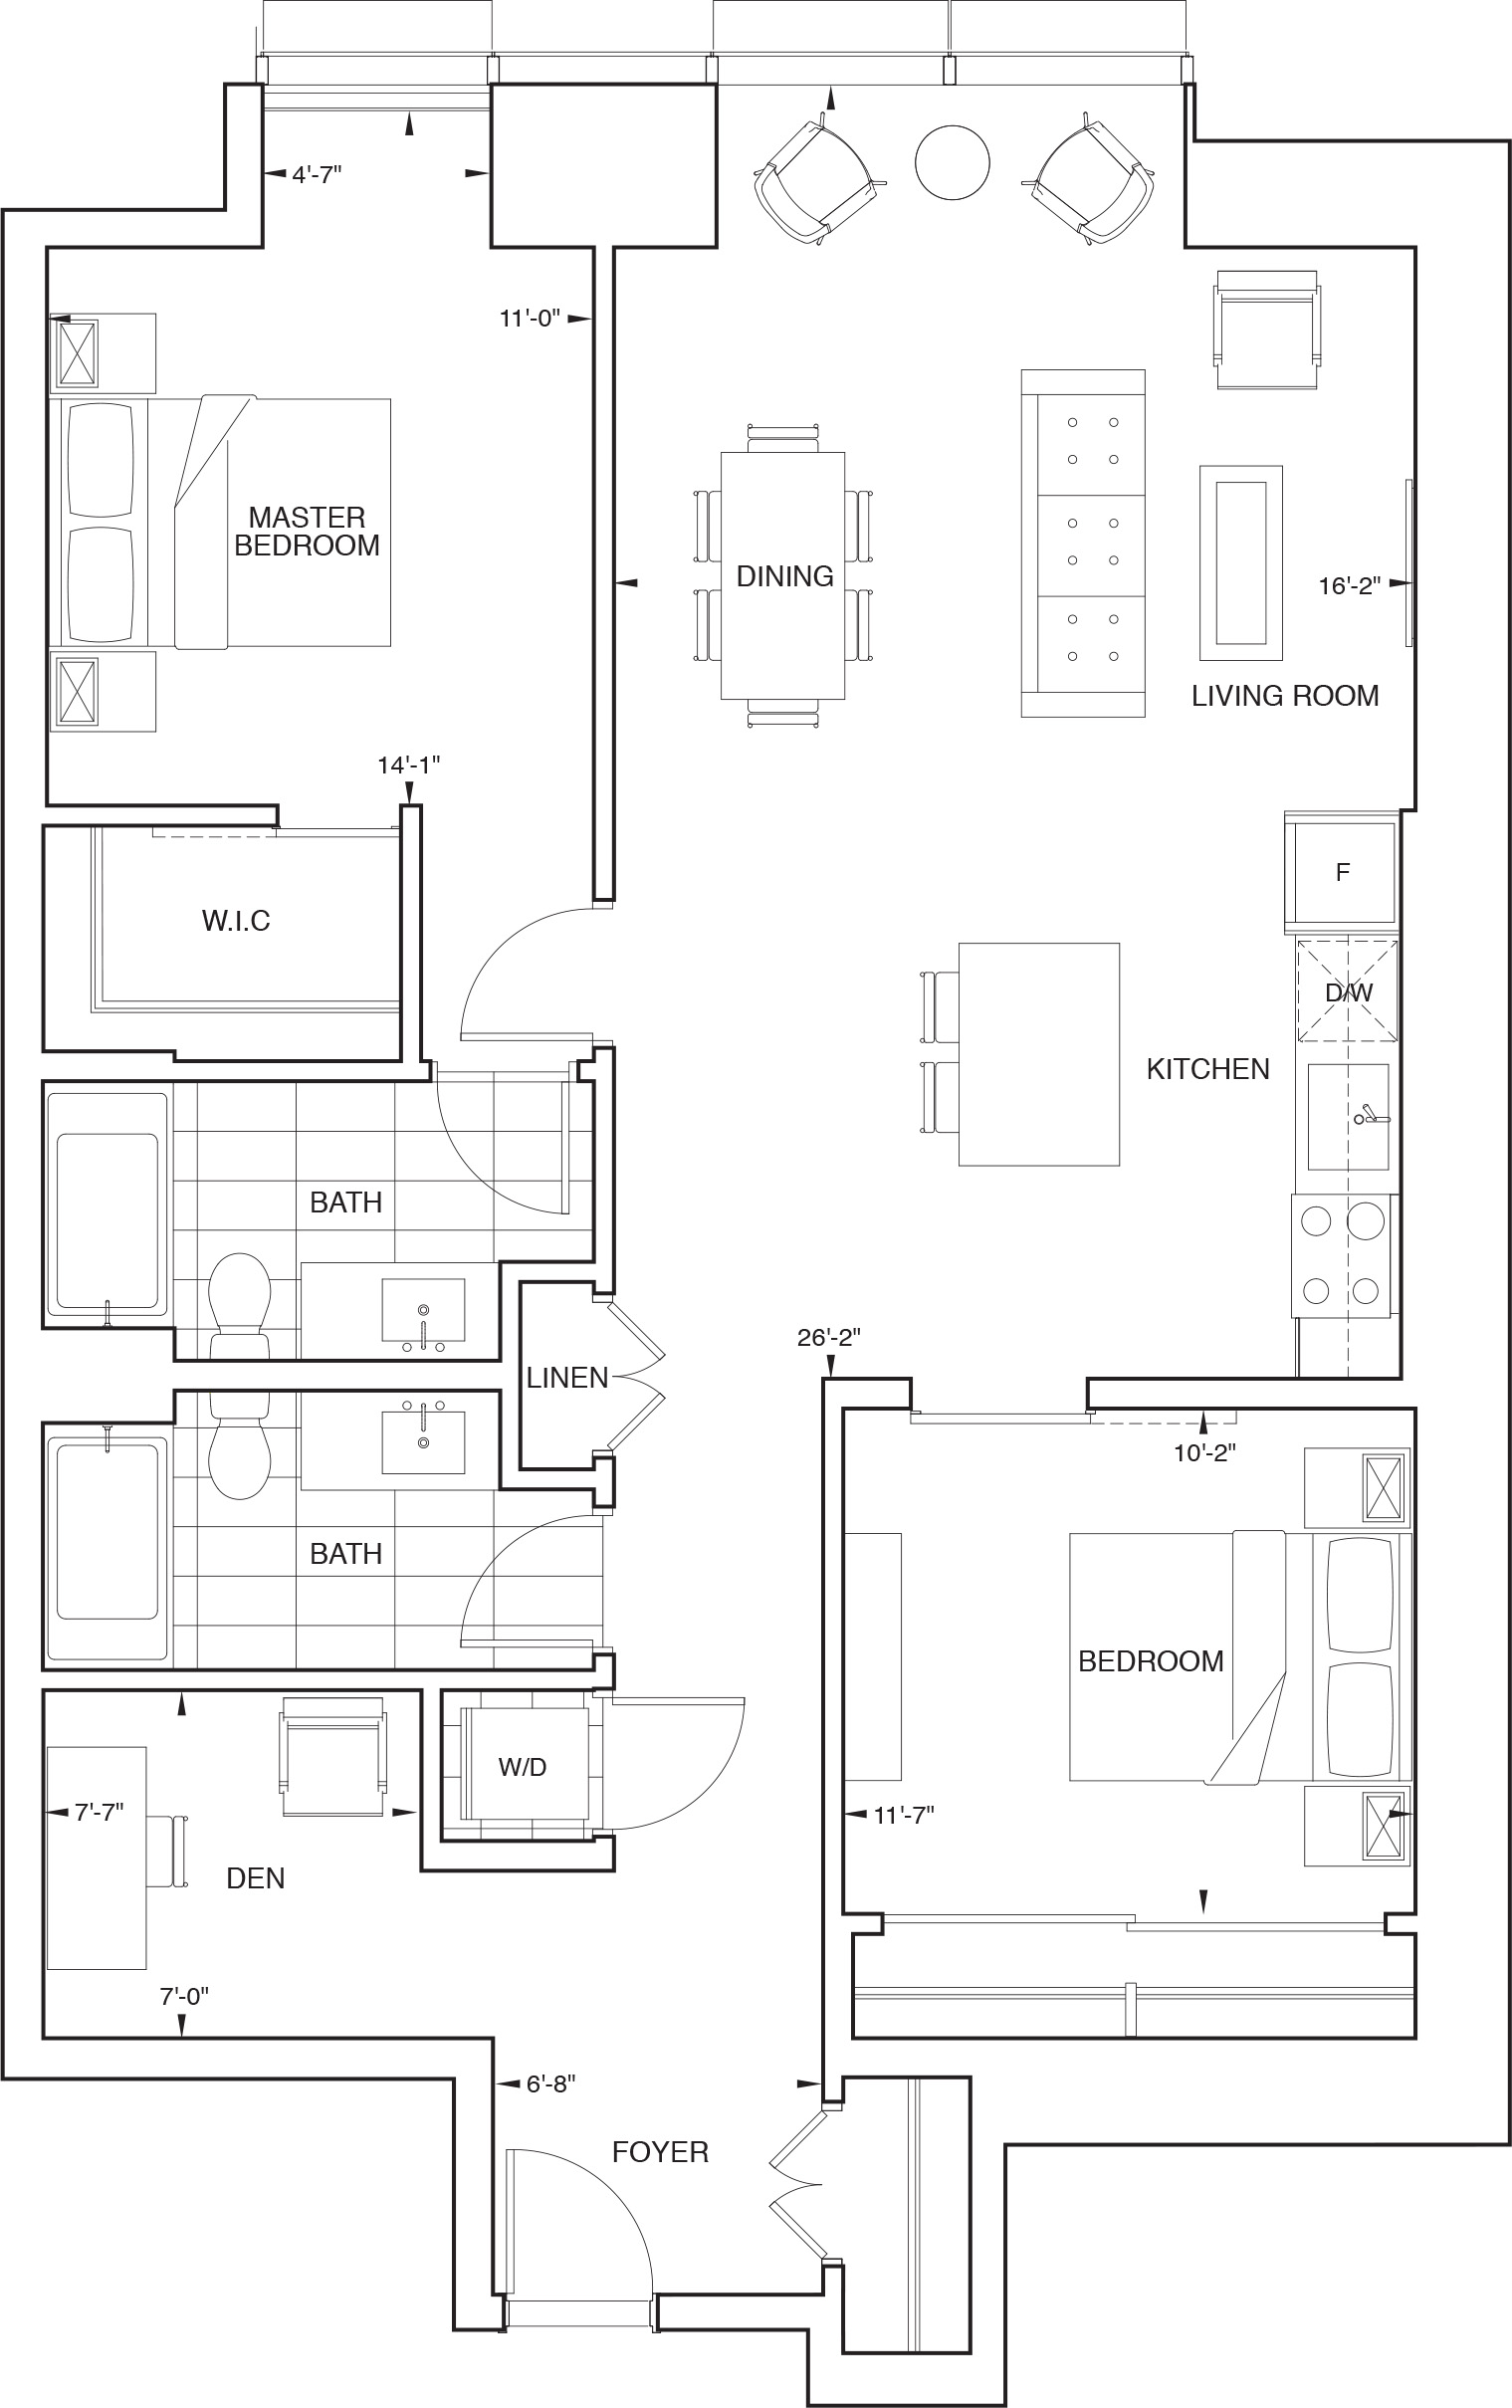 Floorplan for SKY Residence H